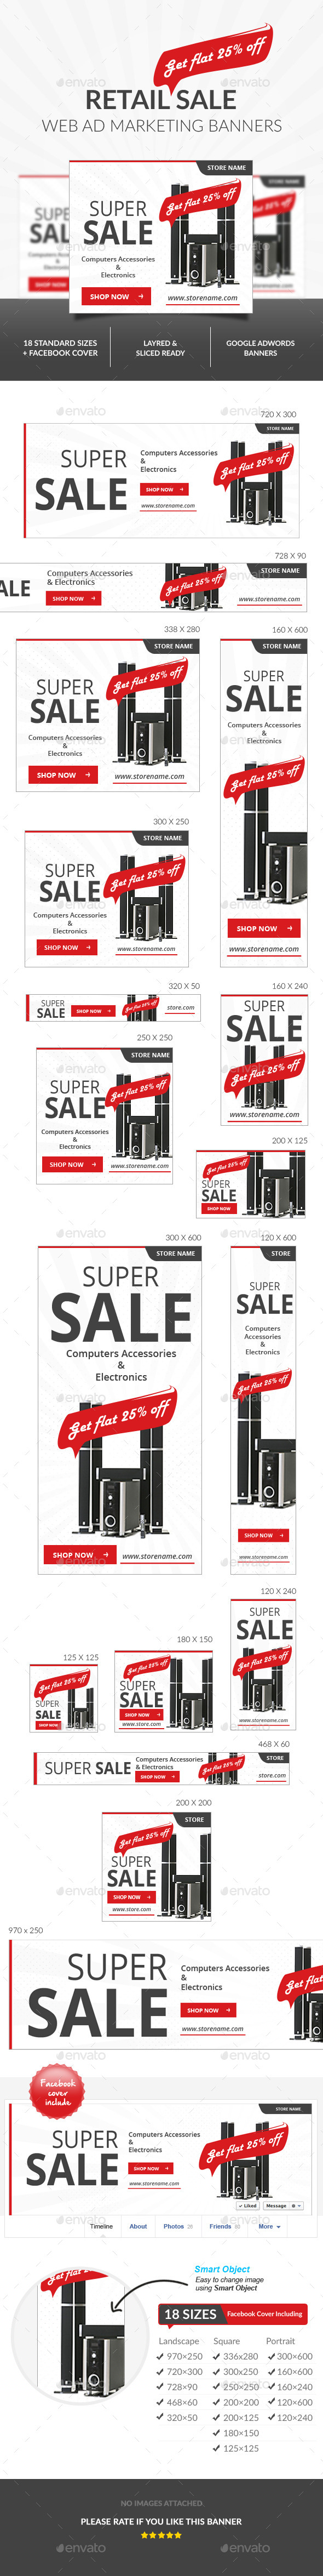 Retail Sale Ad Banners  - Banners & Ads Web Elements